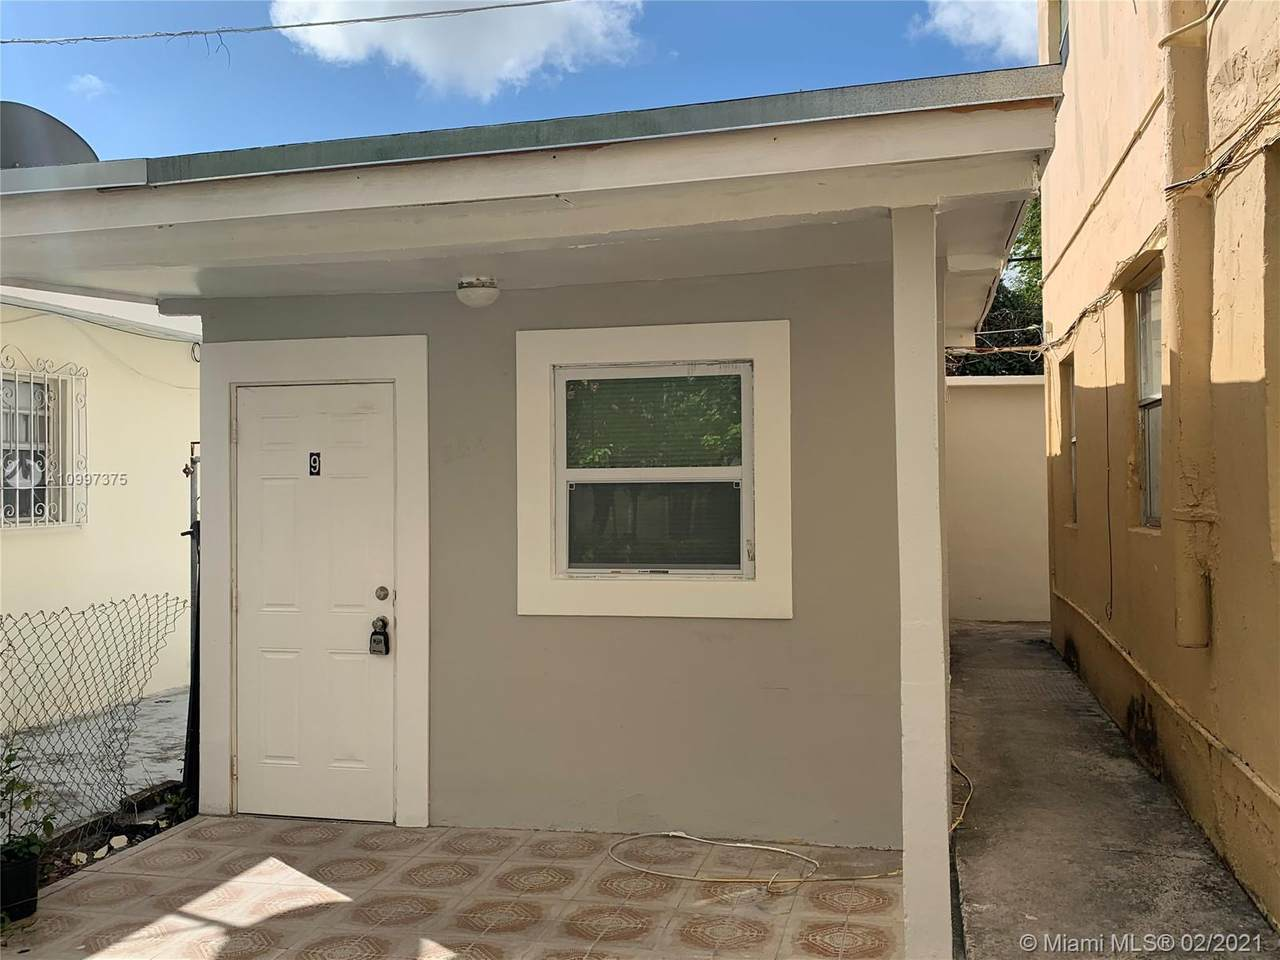 852 13th Ave - Photo 1